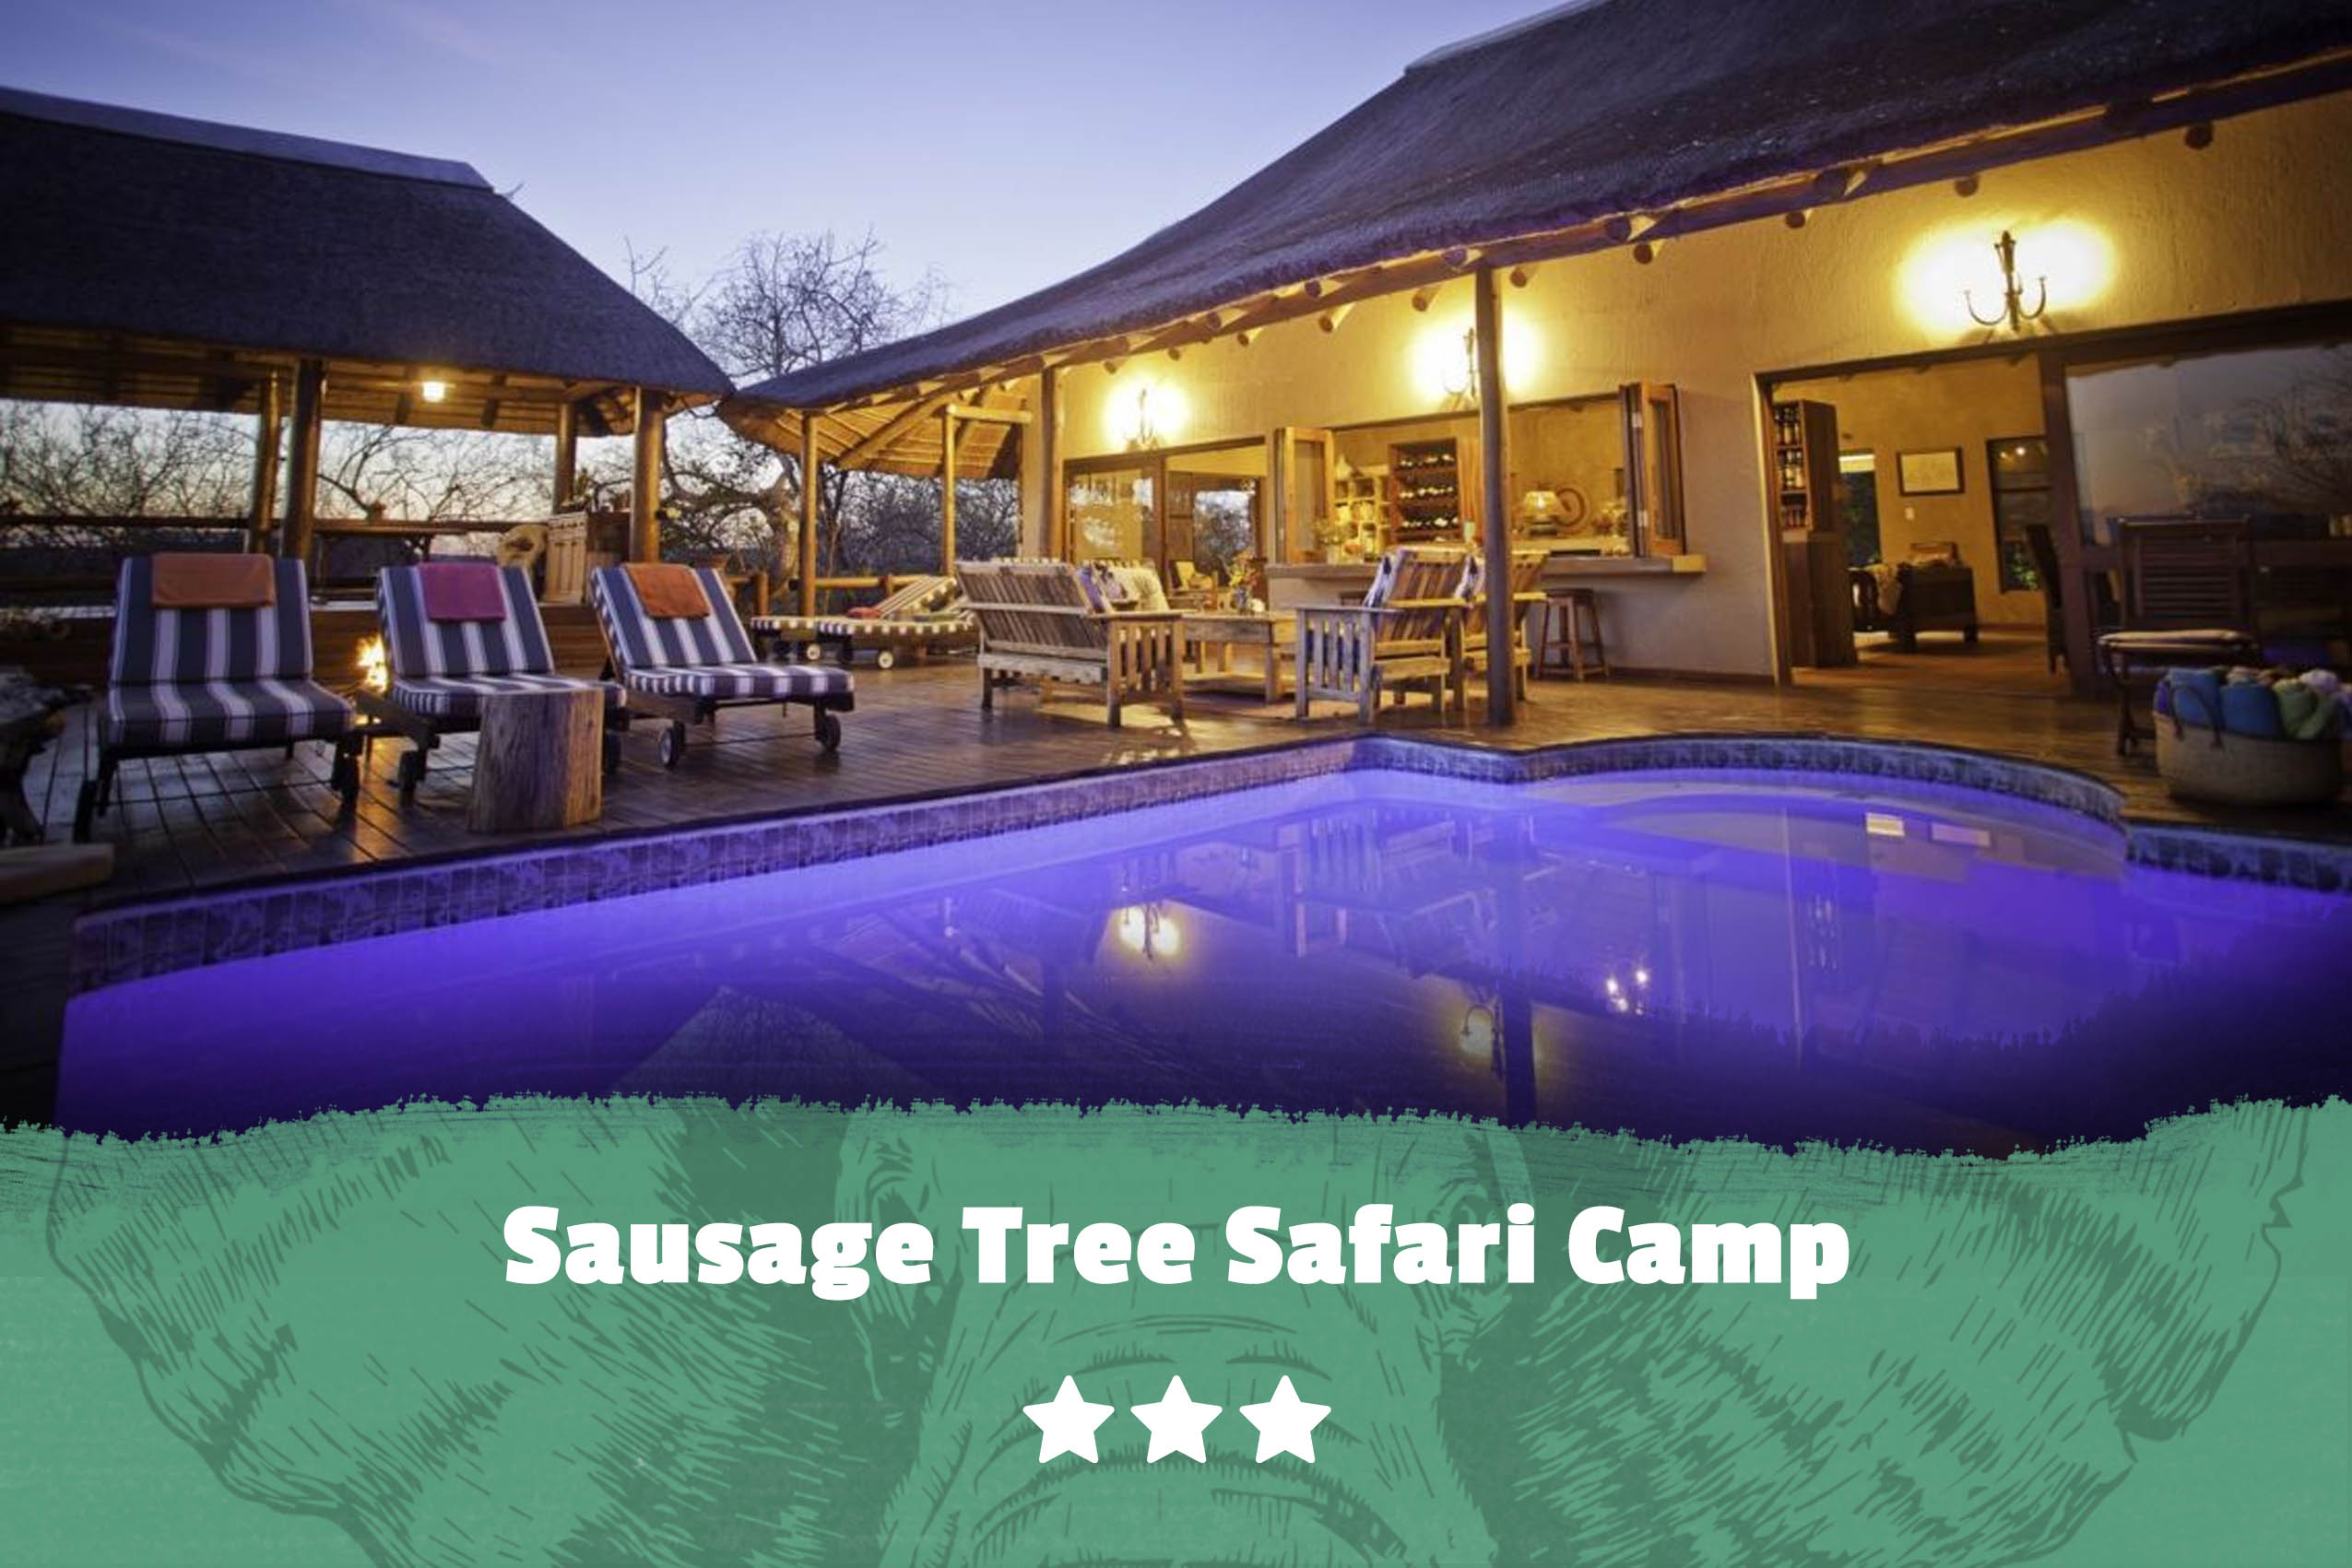 Kruger featured image Sausage Tree Safari Camp